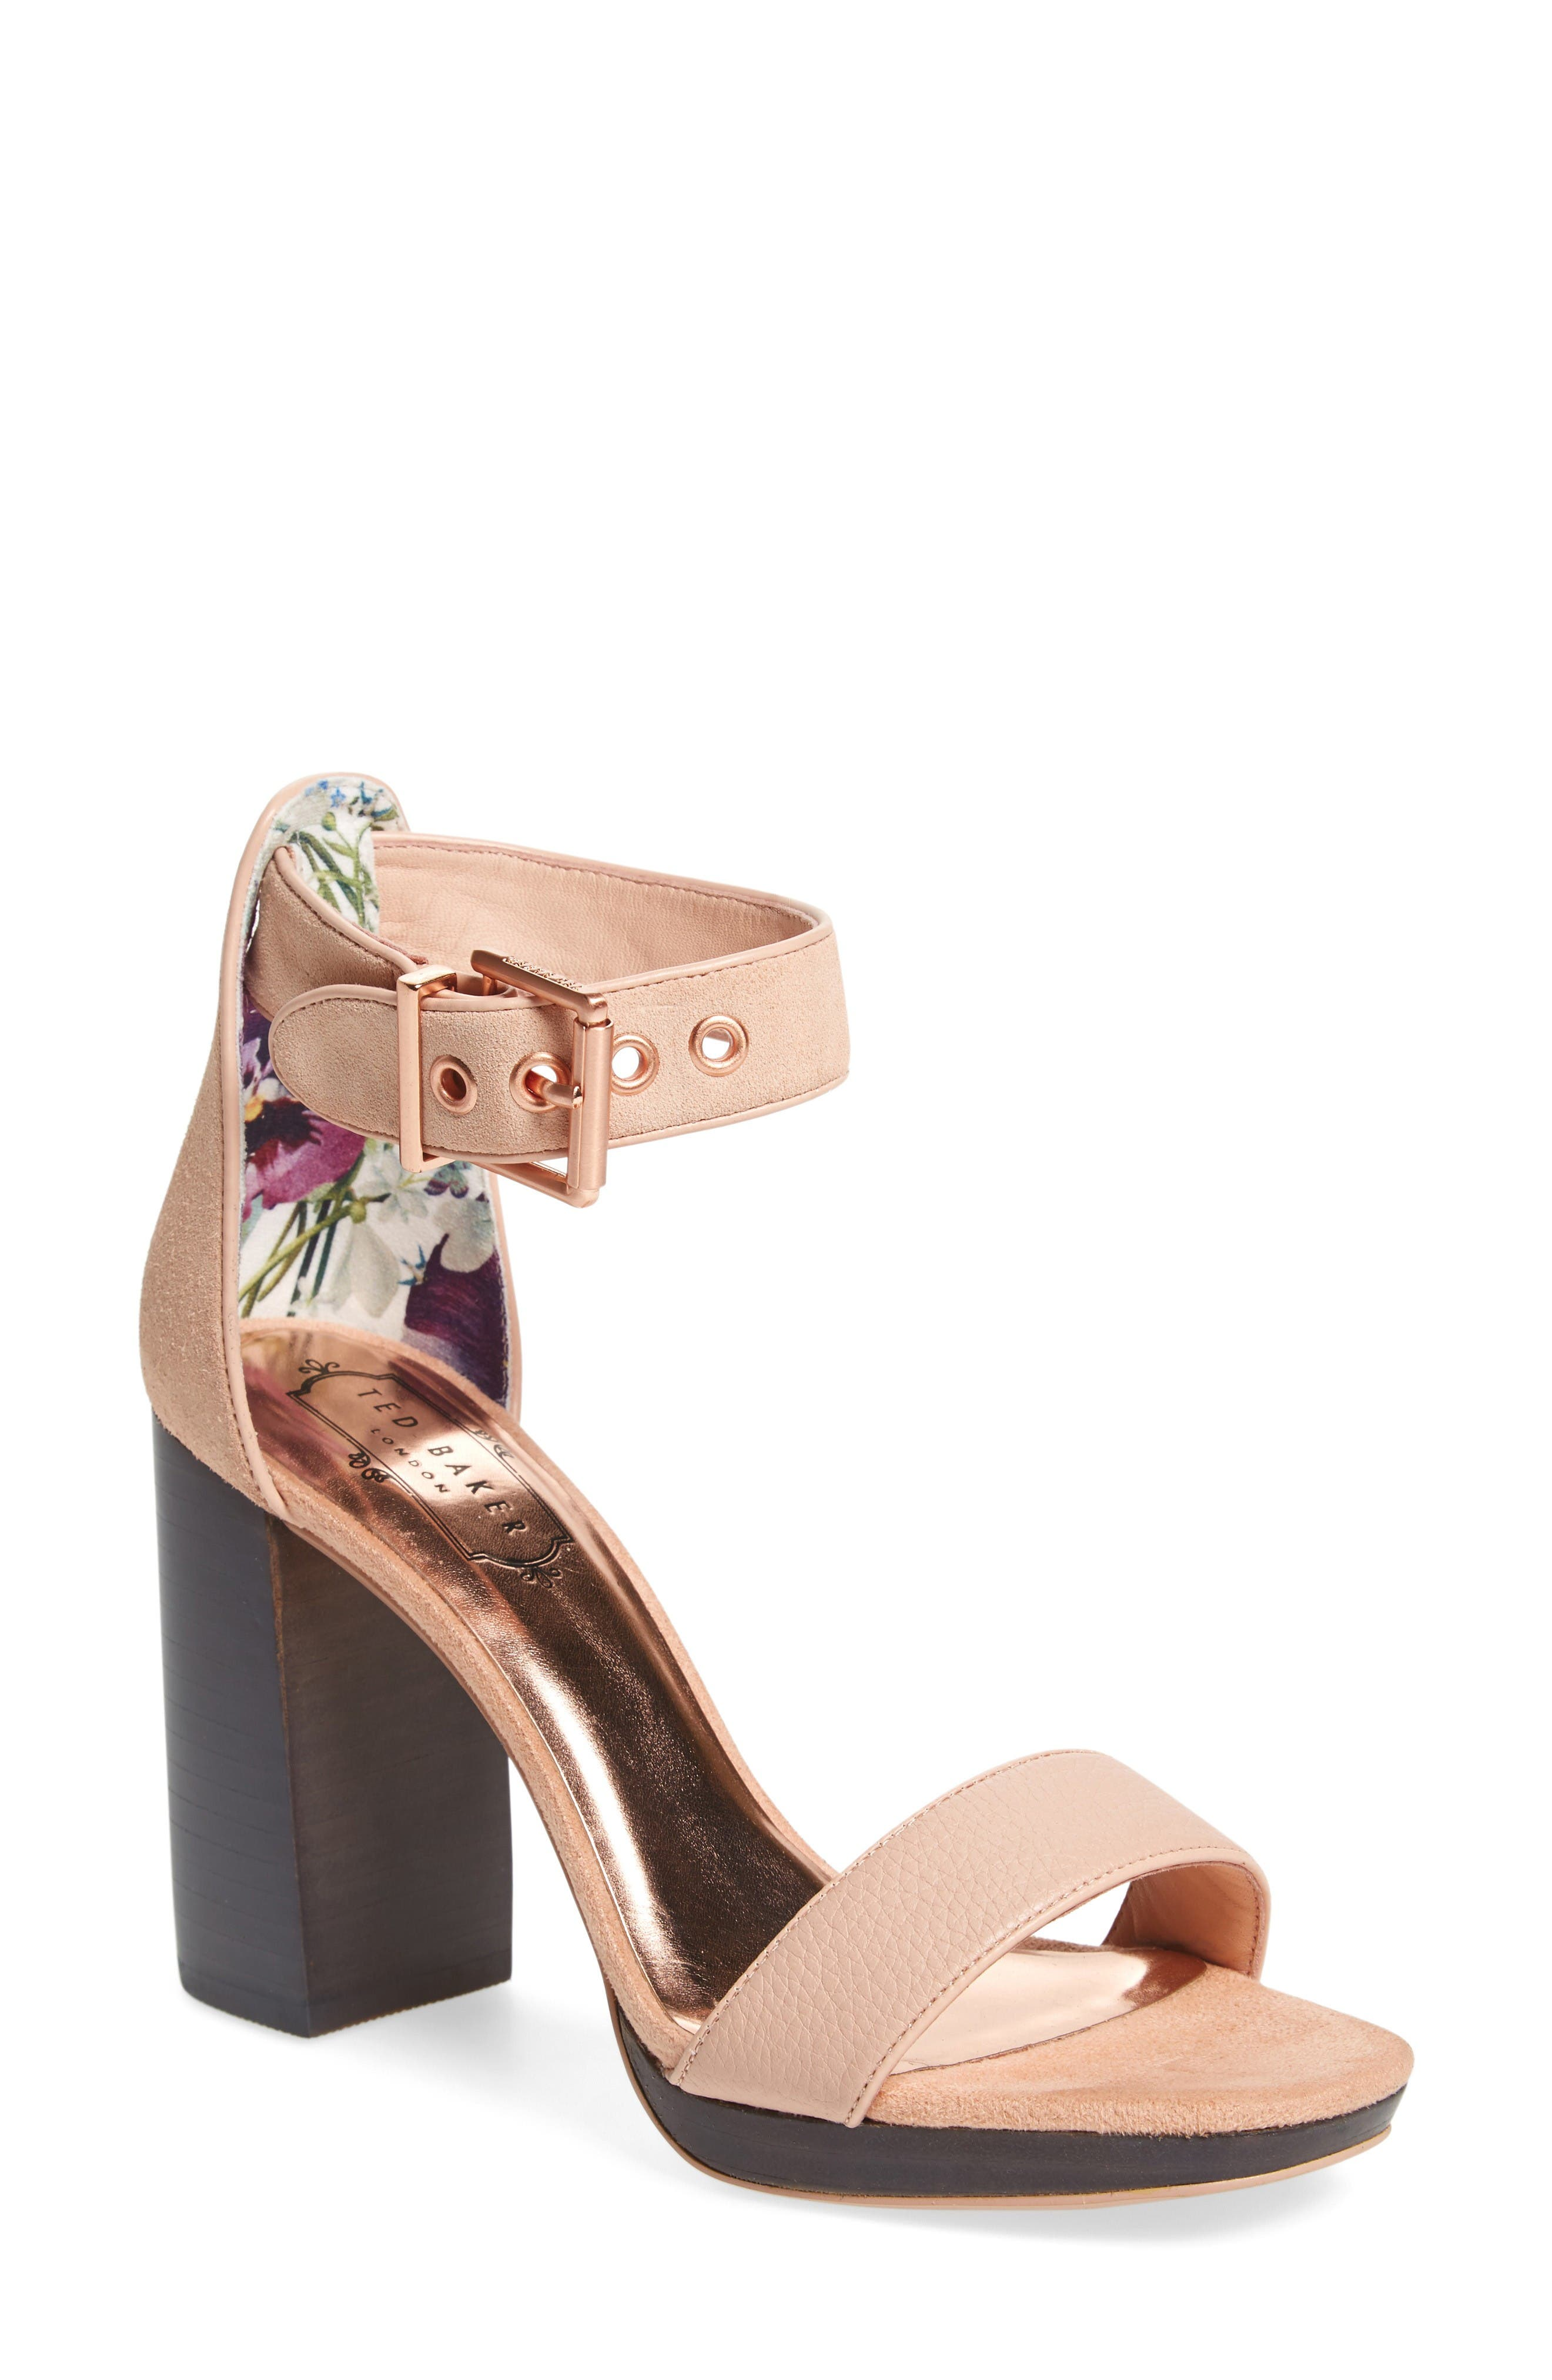 TED BAKER LONDON Lorno Sandal